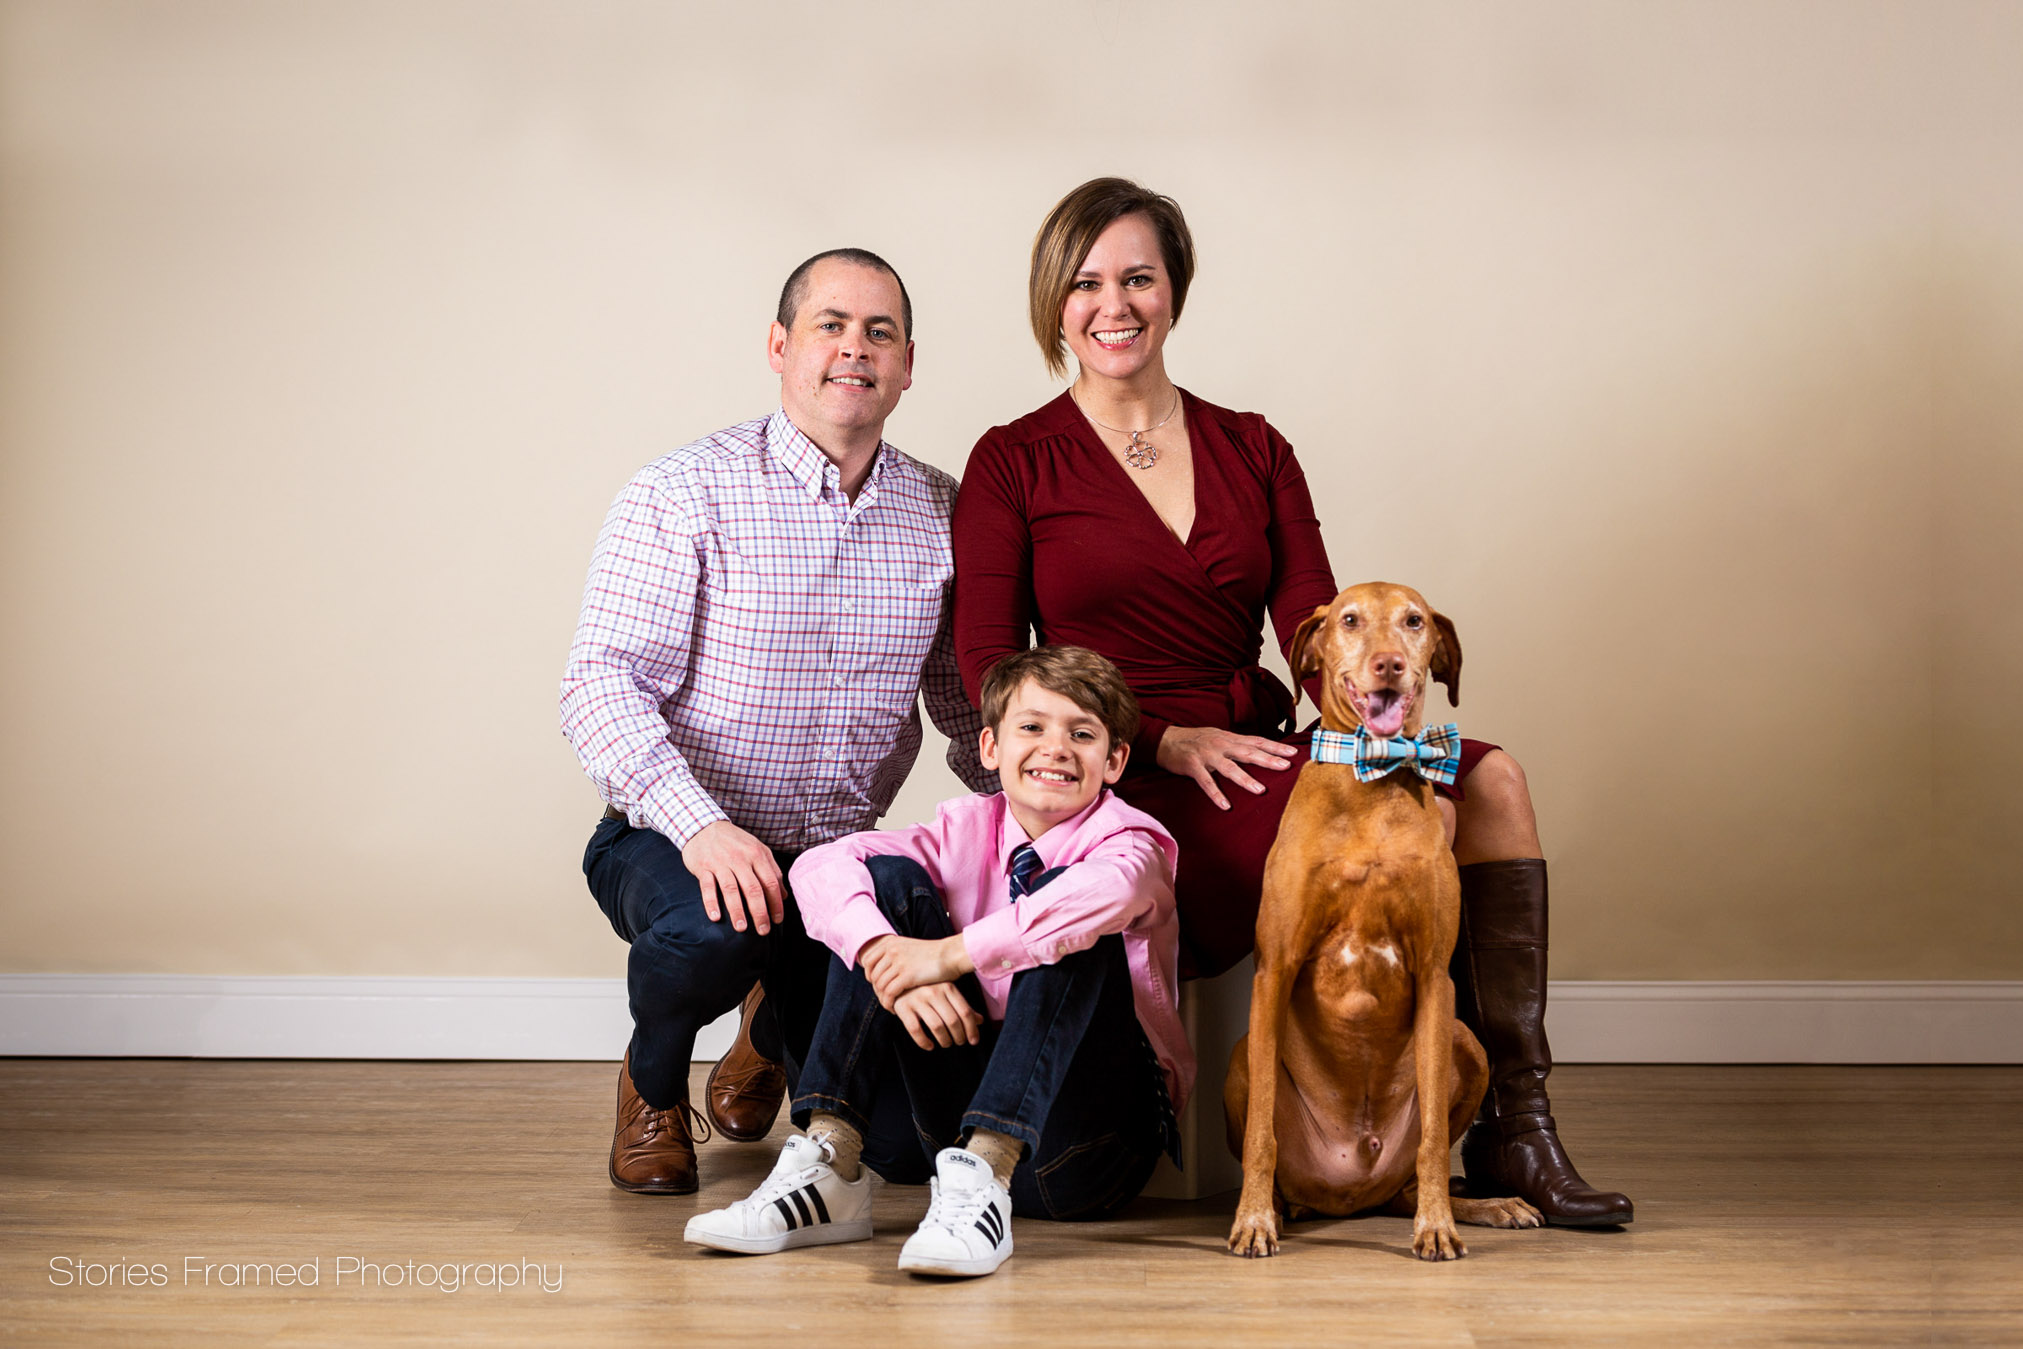 This family photo session was so fun and I loved that they included their dog.